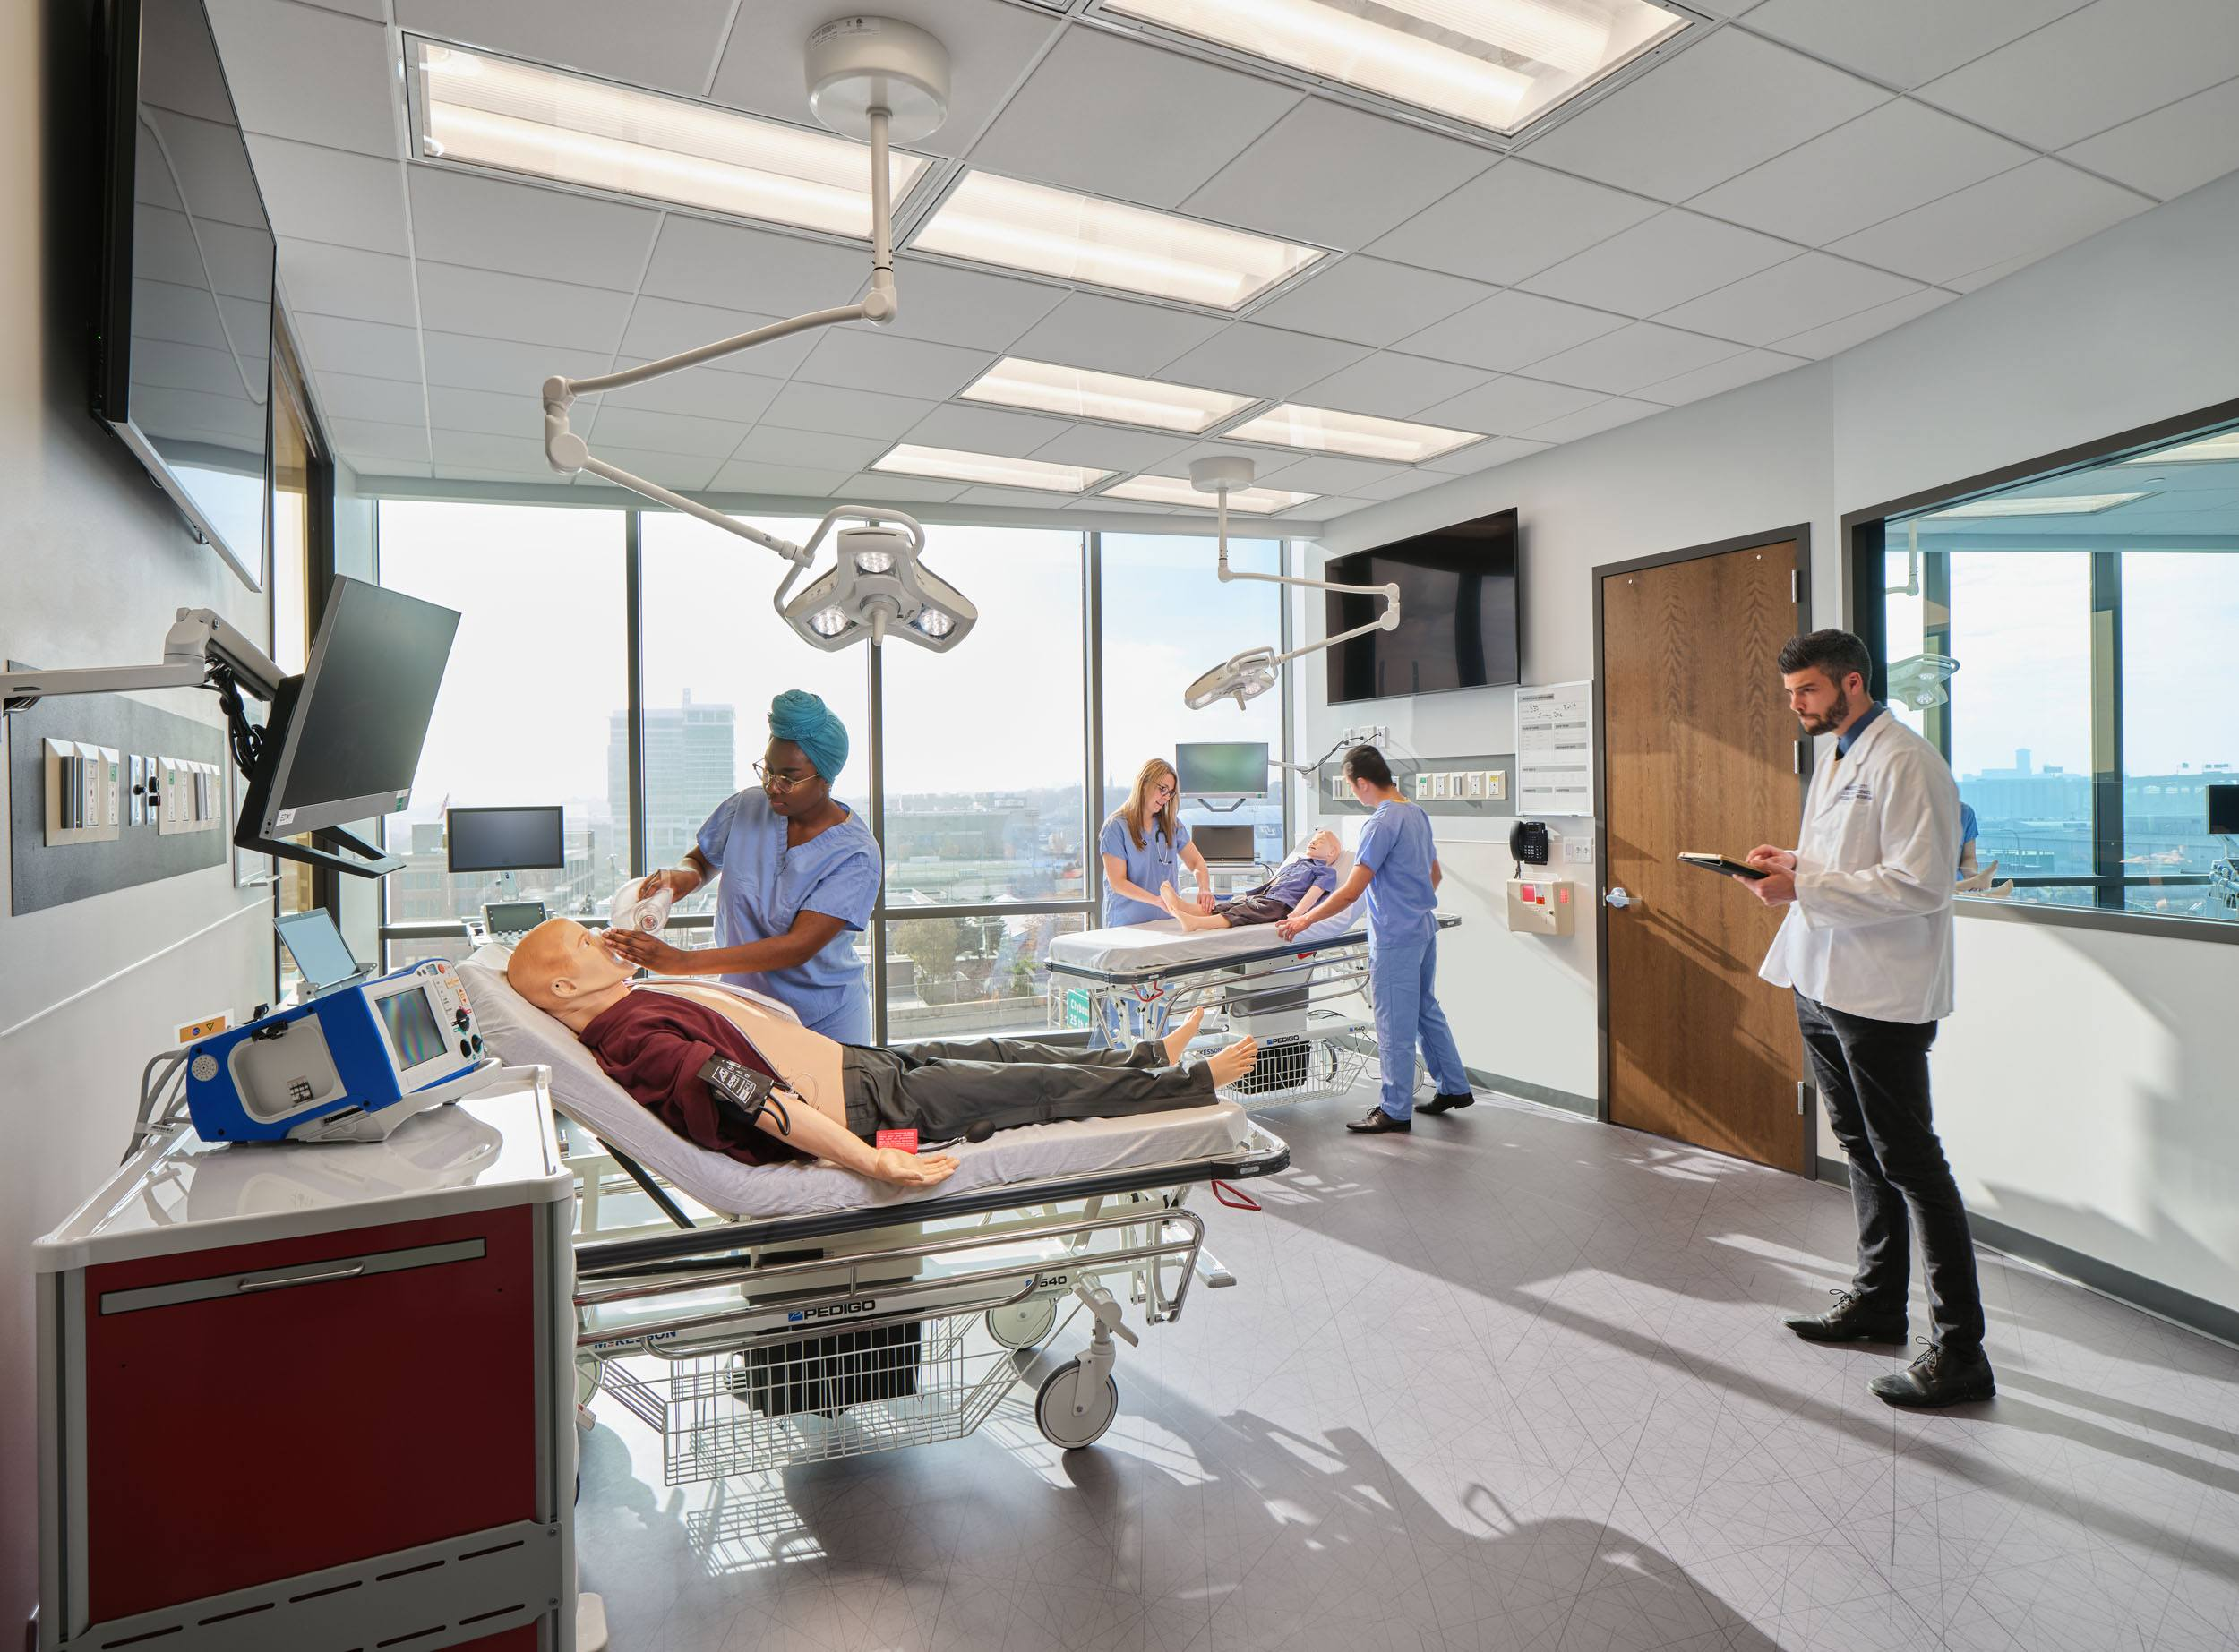 Marquette University - Physician Assistant Studies Building interior simulation center